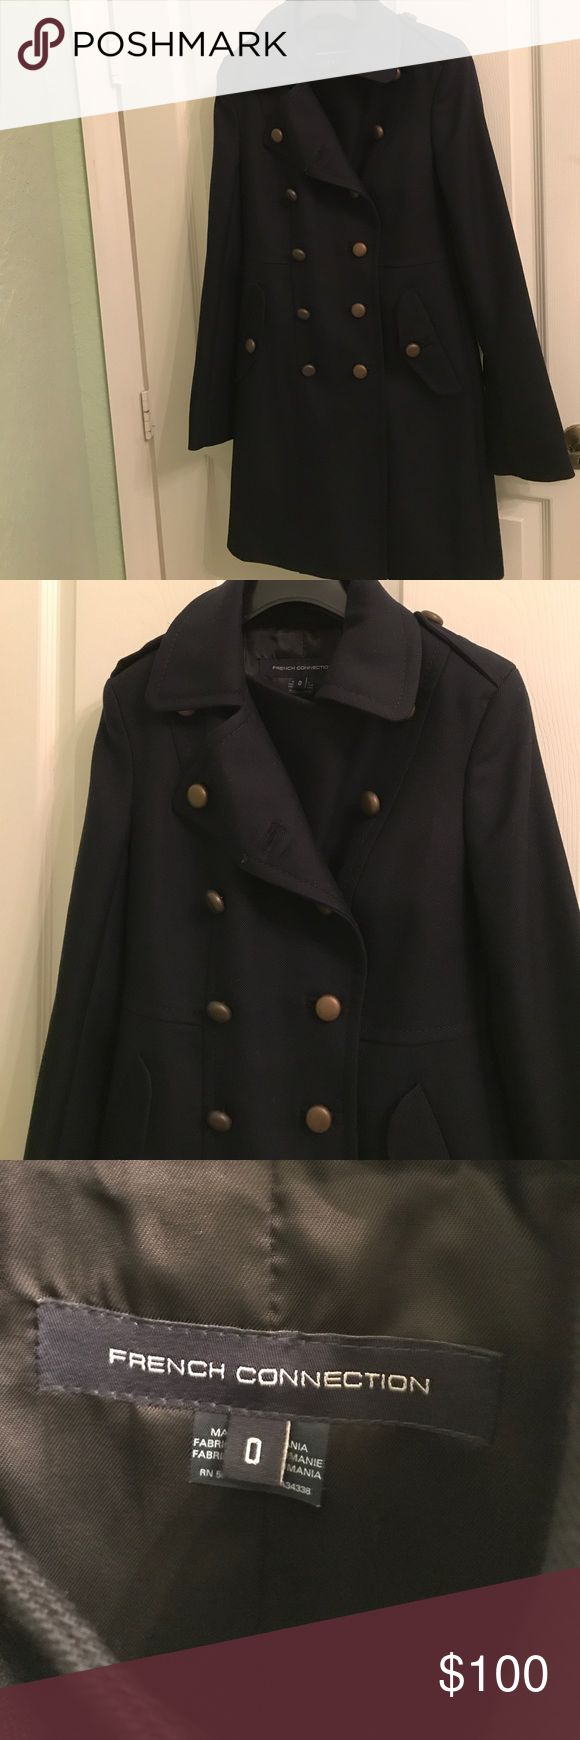 French Connection Navy Blue Military Style Coat NWOT French Connection Jackets & Coats Pea Coats